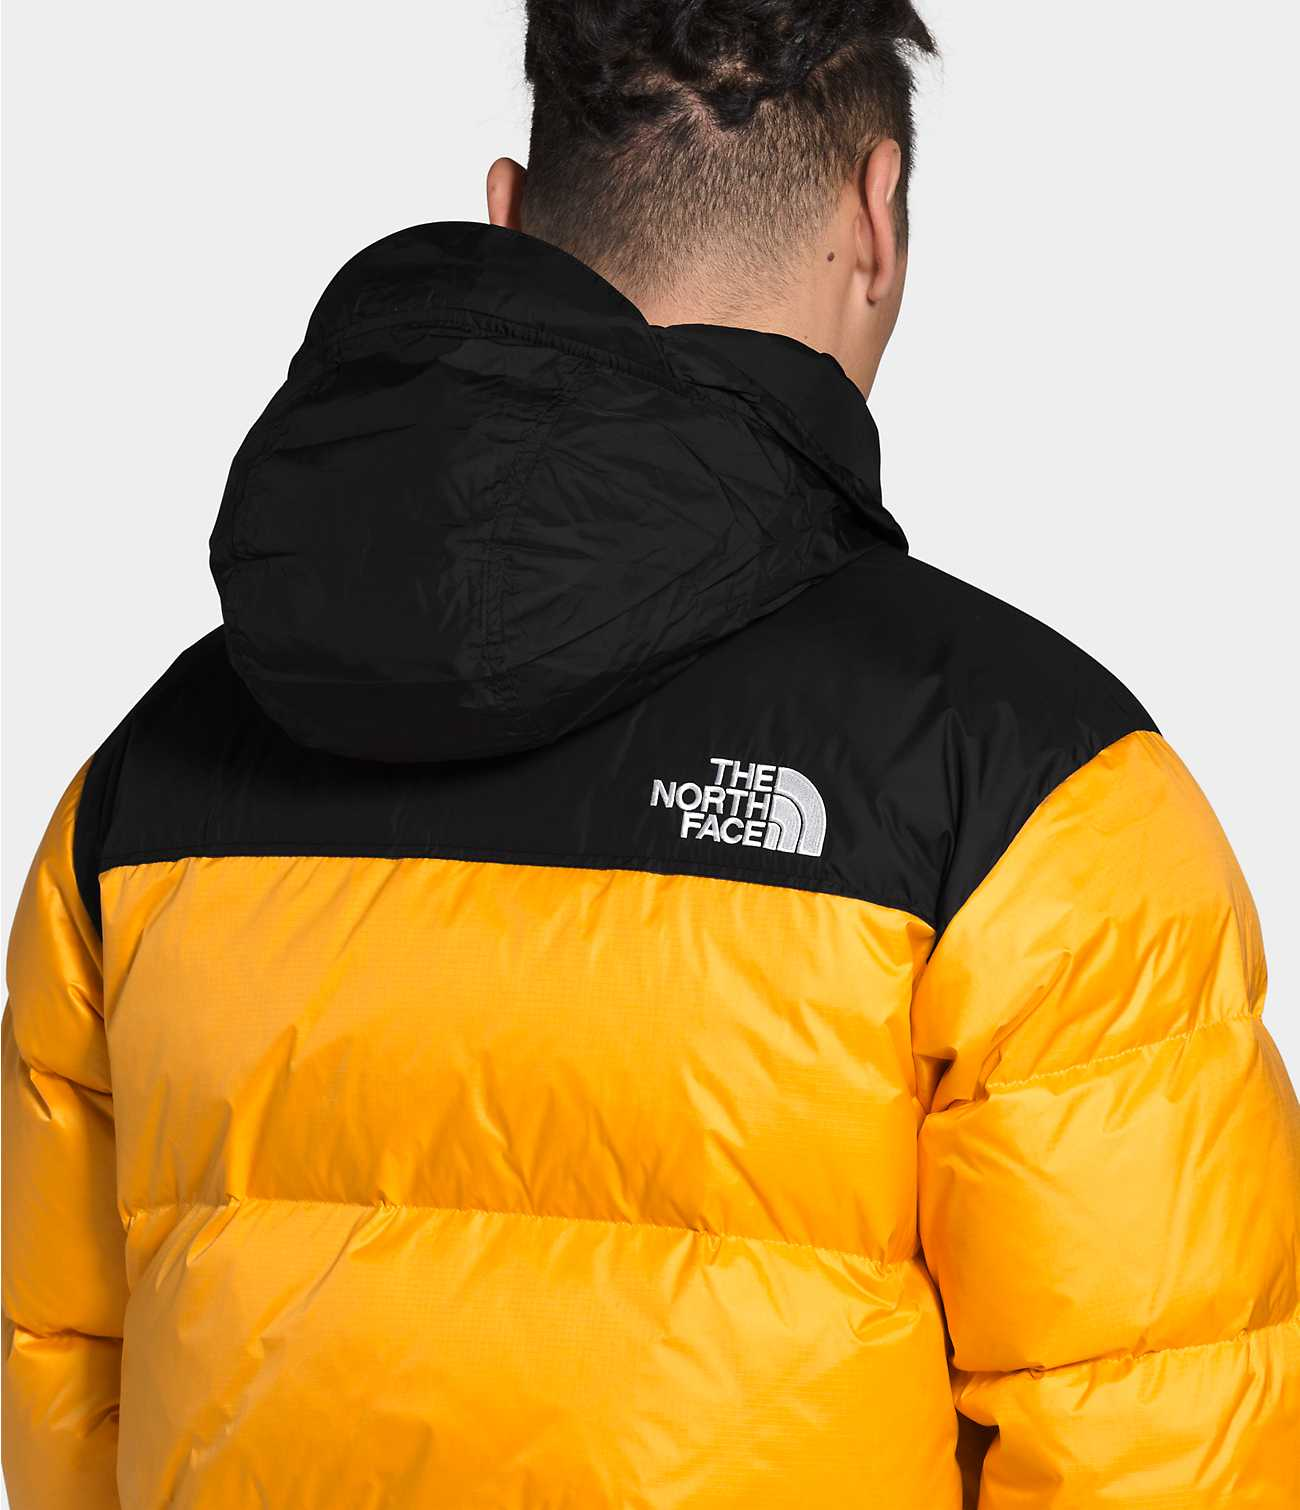 THE NORTH FACE M'S OUTDOOR JKT M 1996 RETRO NUPTSE JACKET - SUMMIT GOLD